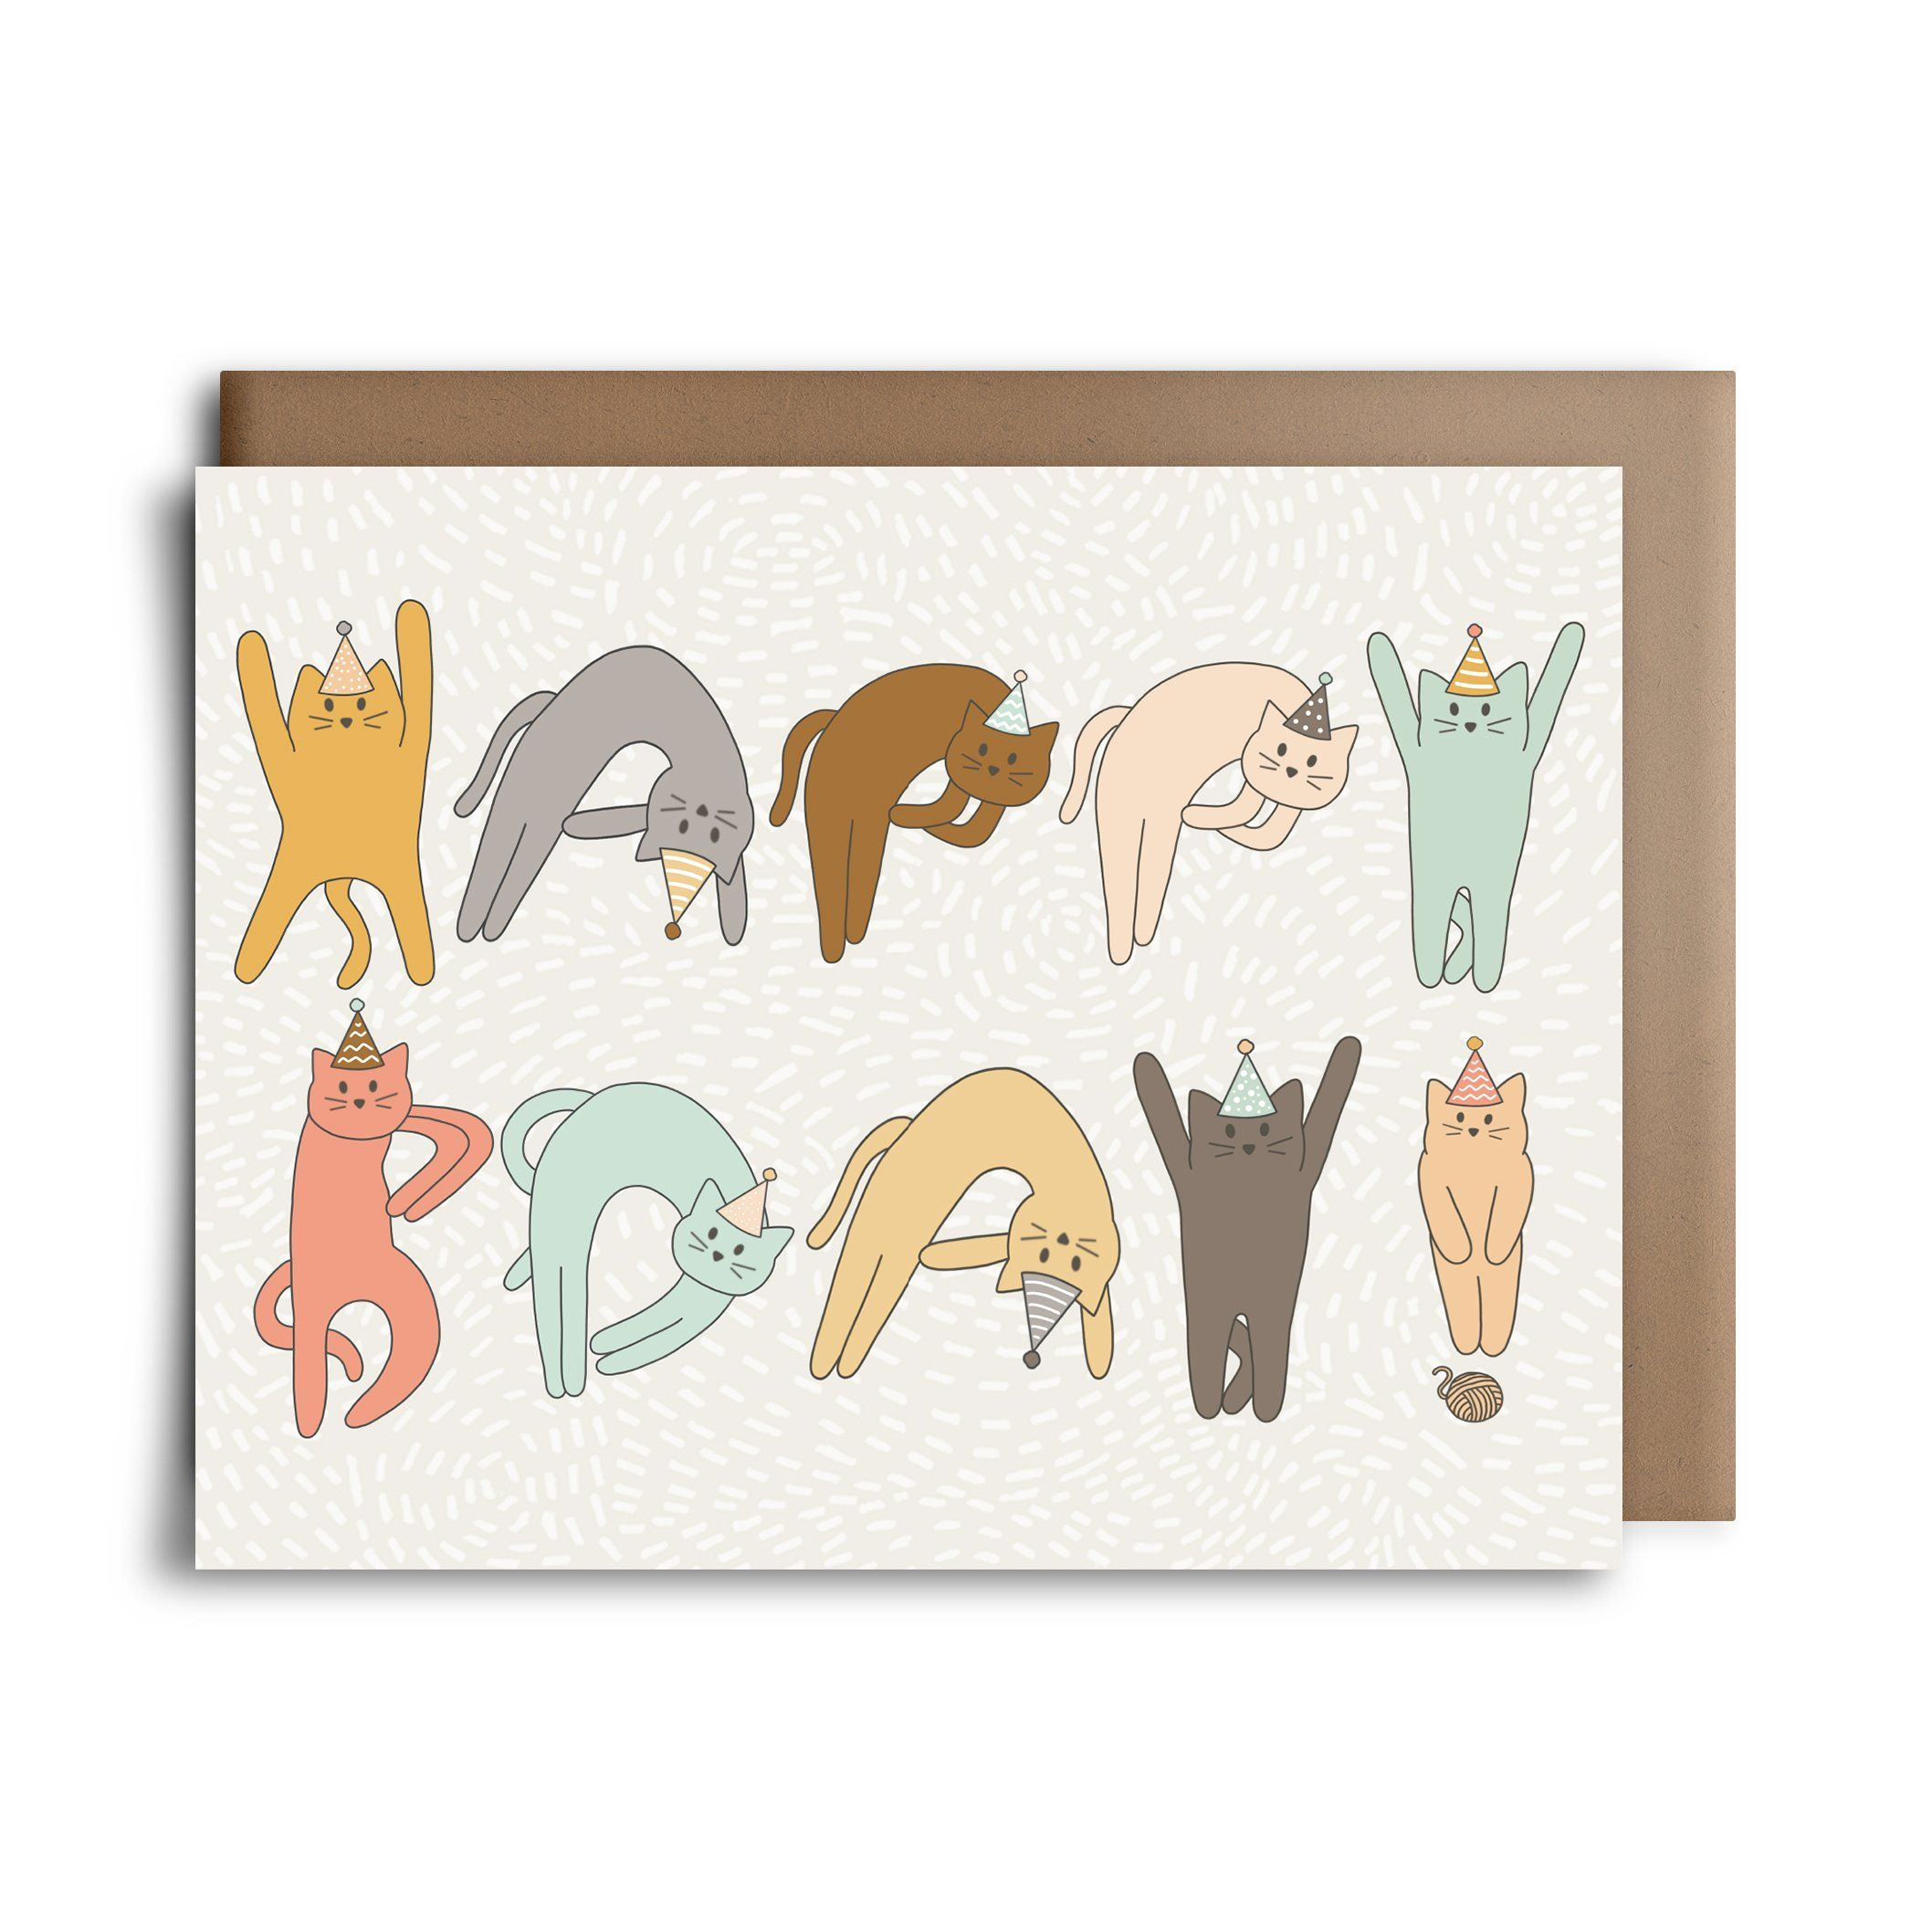 Happy Birthday Spelled Out In Cats This Makes For The Purrfect Cat Lovers Card